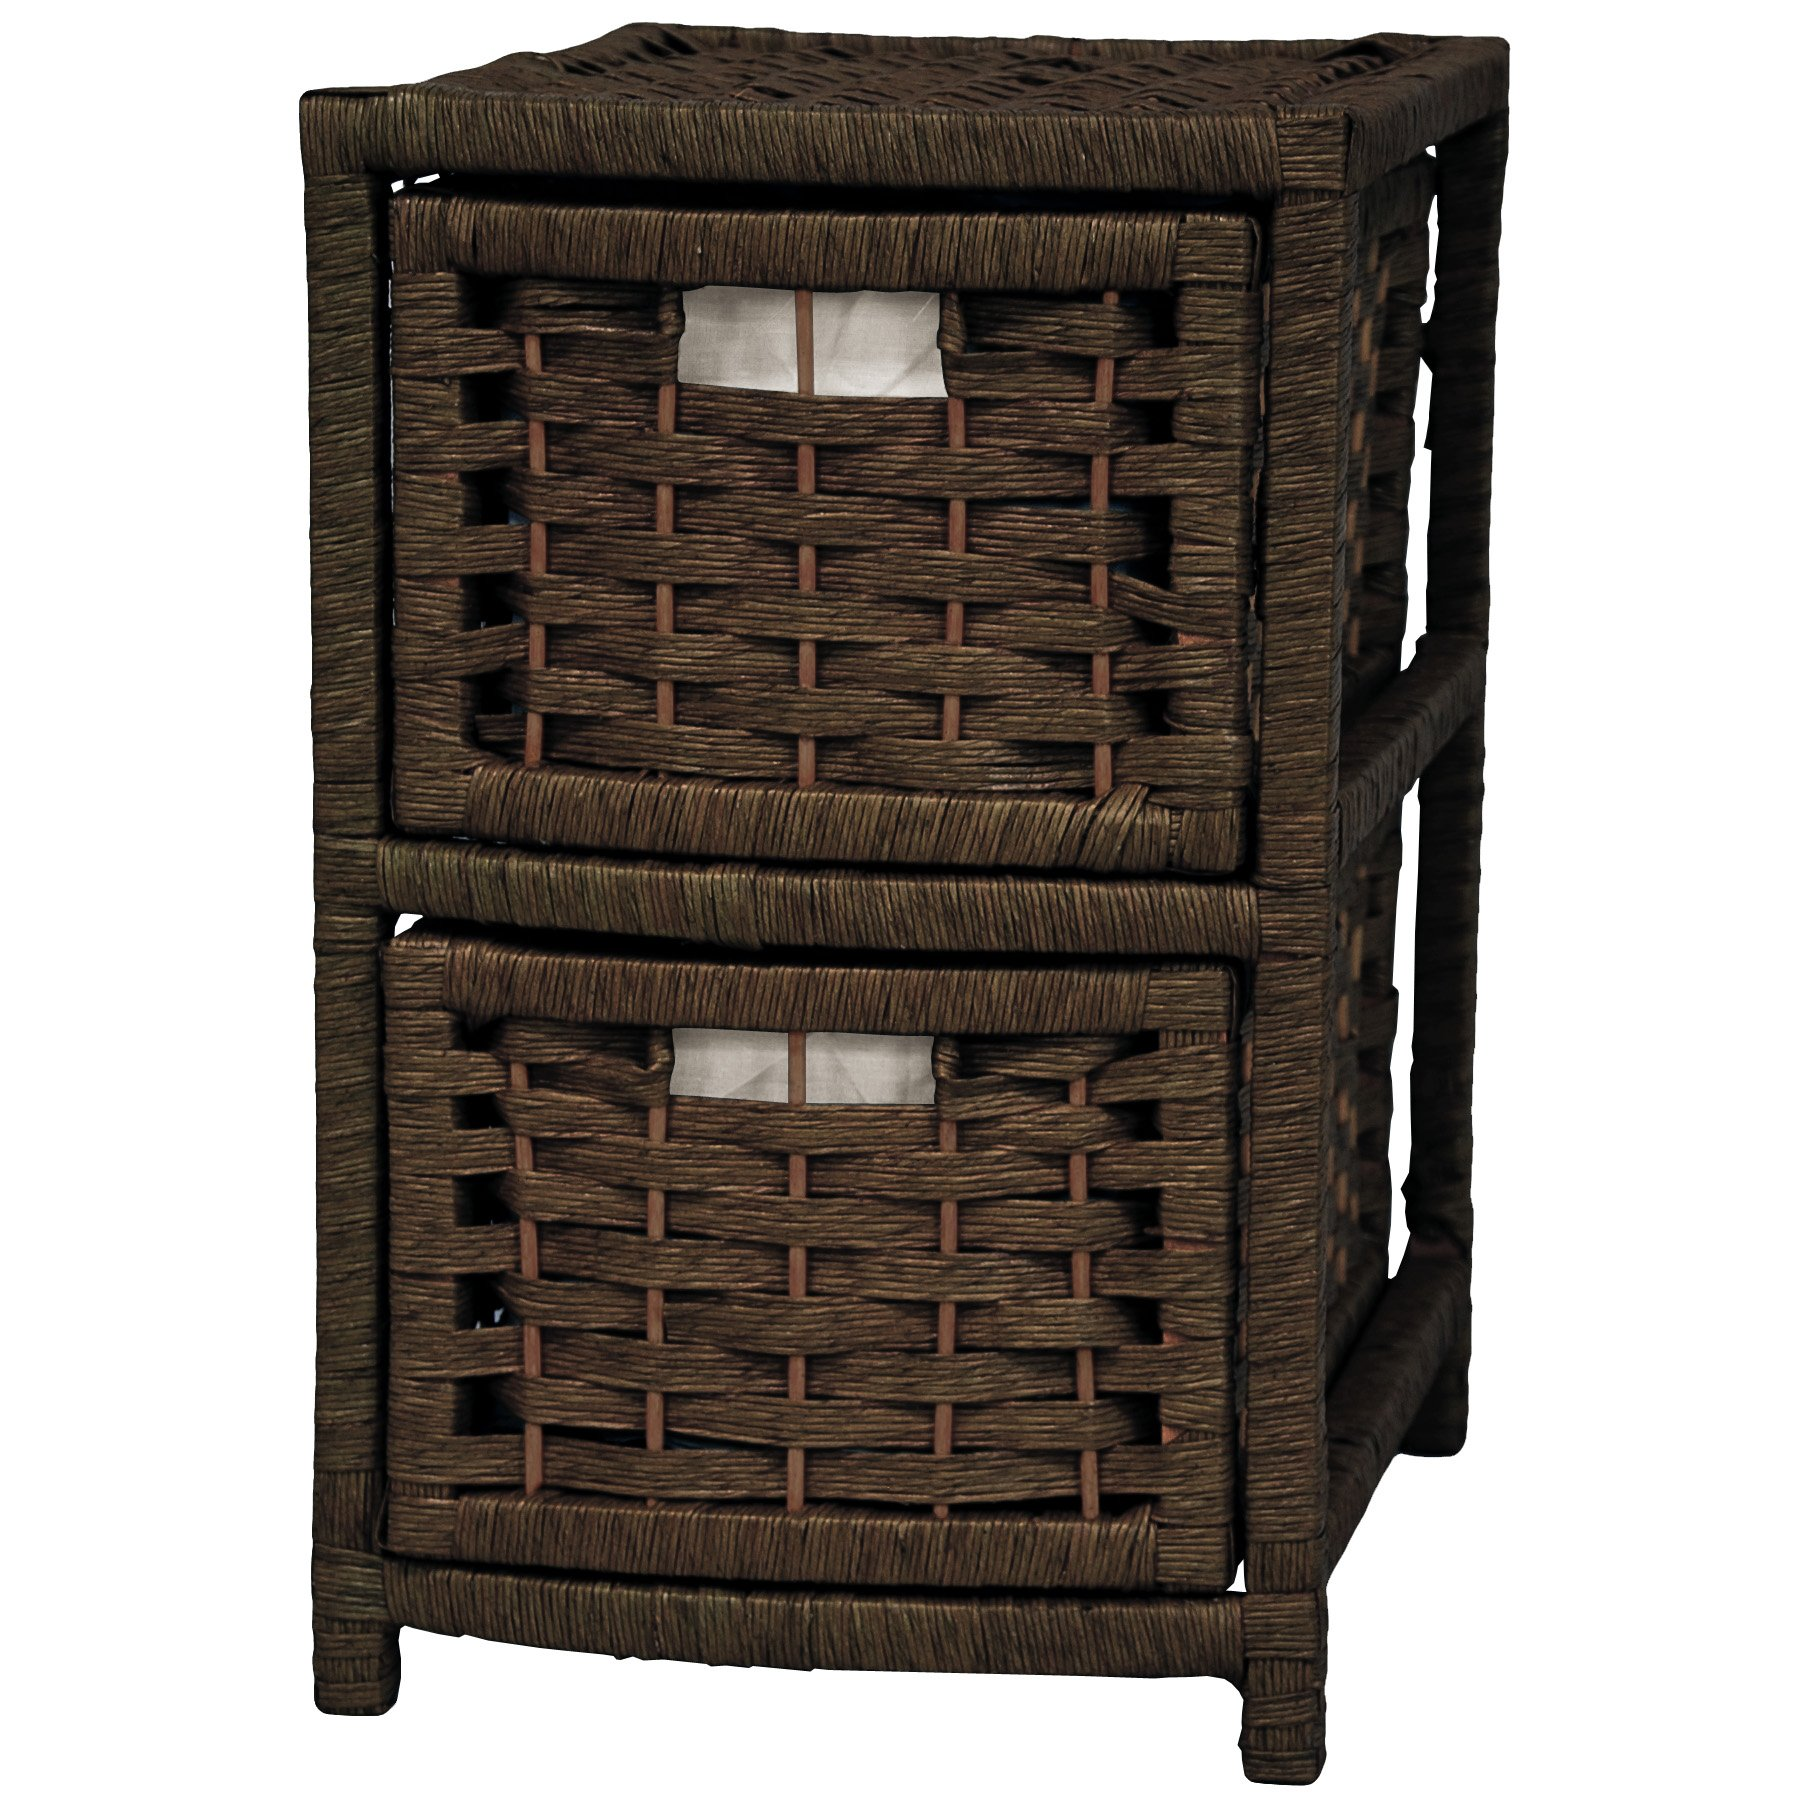 17'' Natural Fiber Occasional Chest of Drawers - Mocha by ORIENTAL FURNITURE